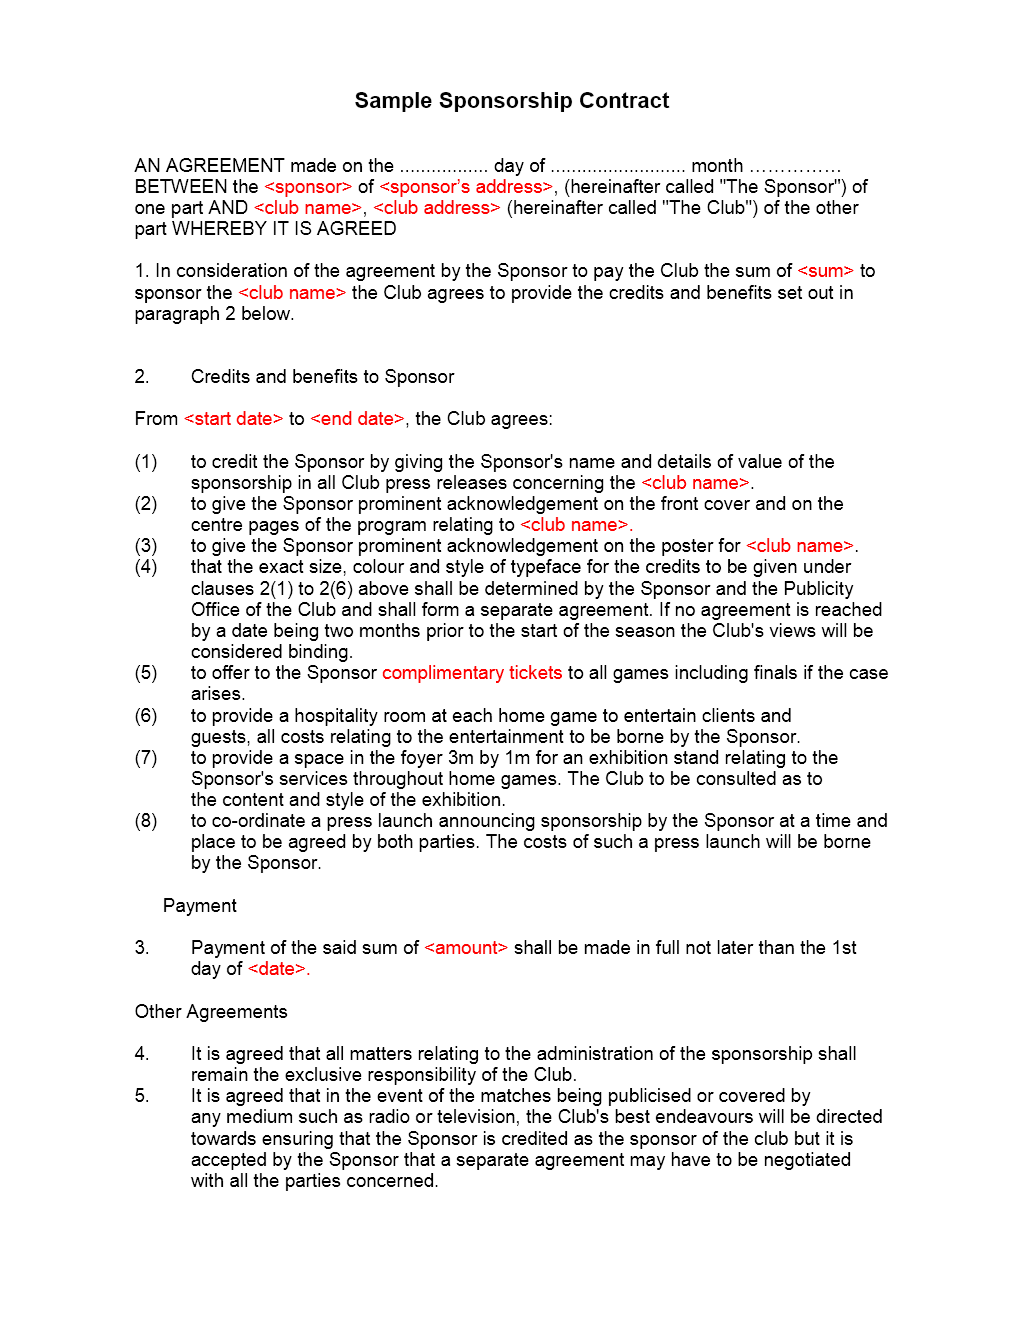 Sponsorship Agreement Template | Sponsorship Contract Template